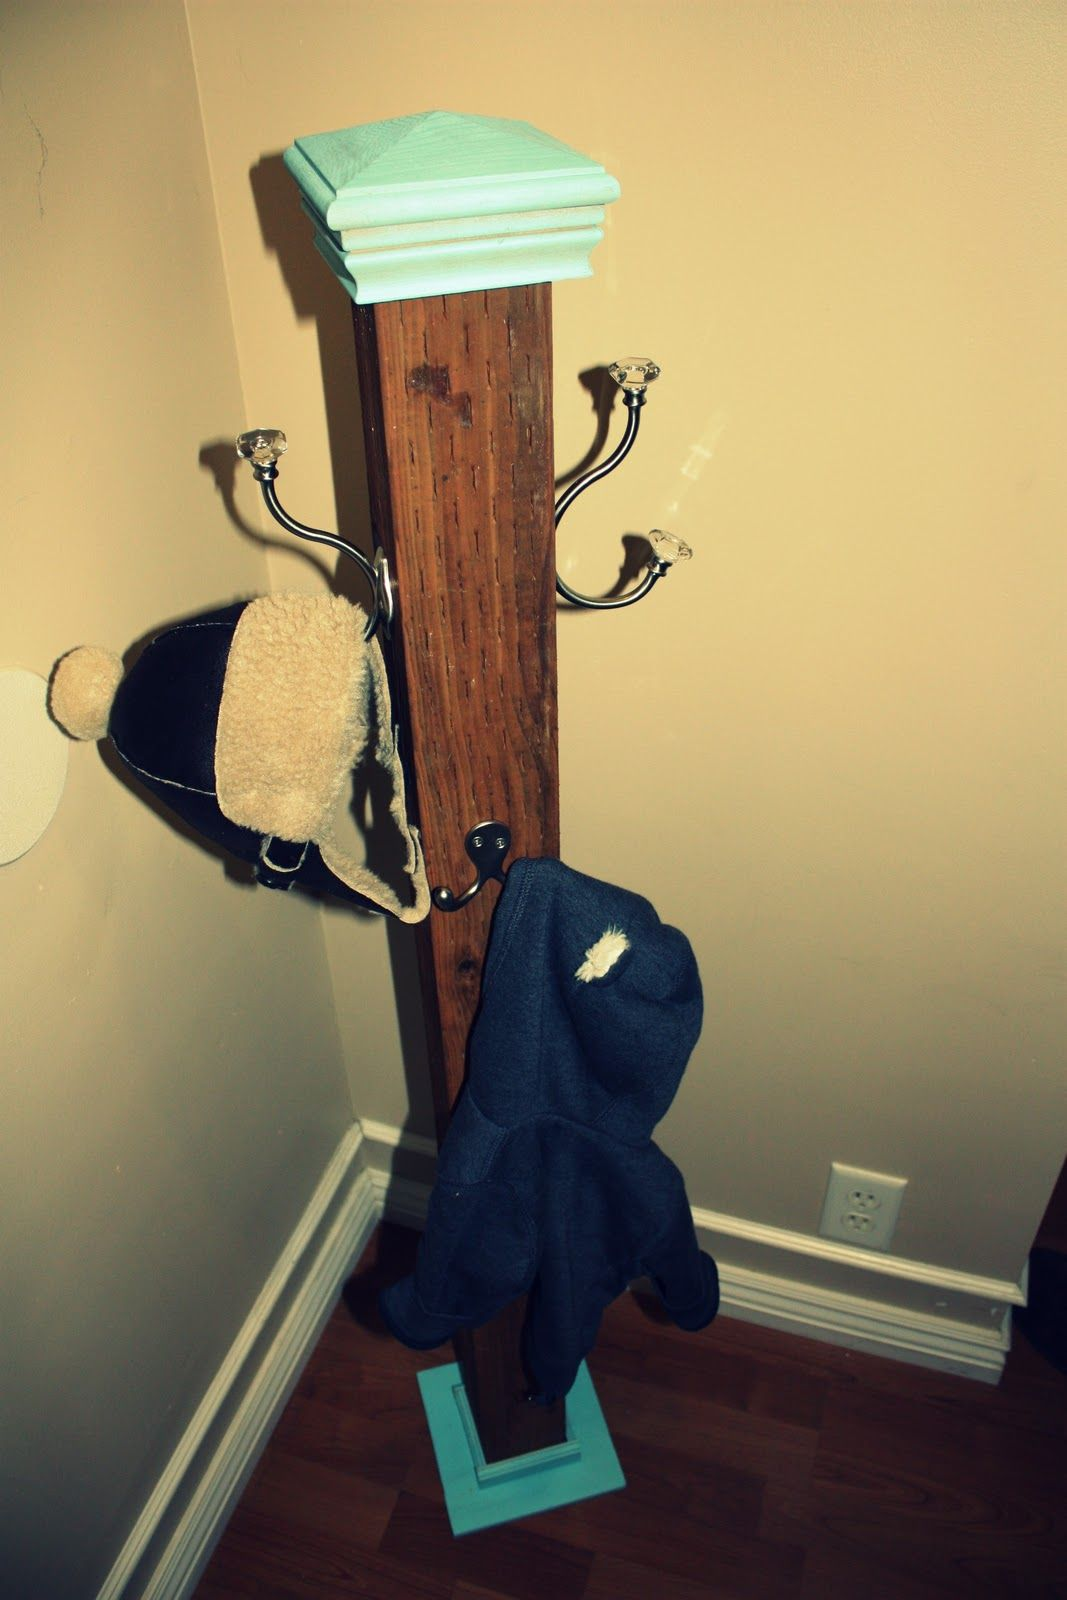 Best Wood For Woodworking | Pinterest | Purse hanger, Hanger and Purse